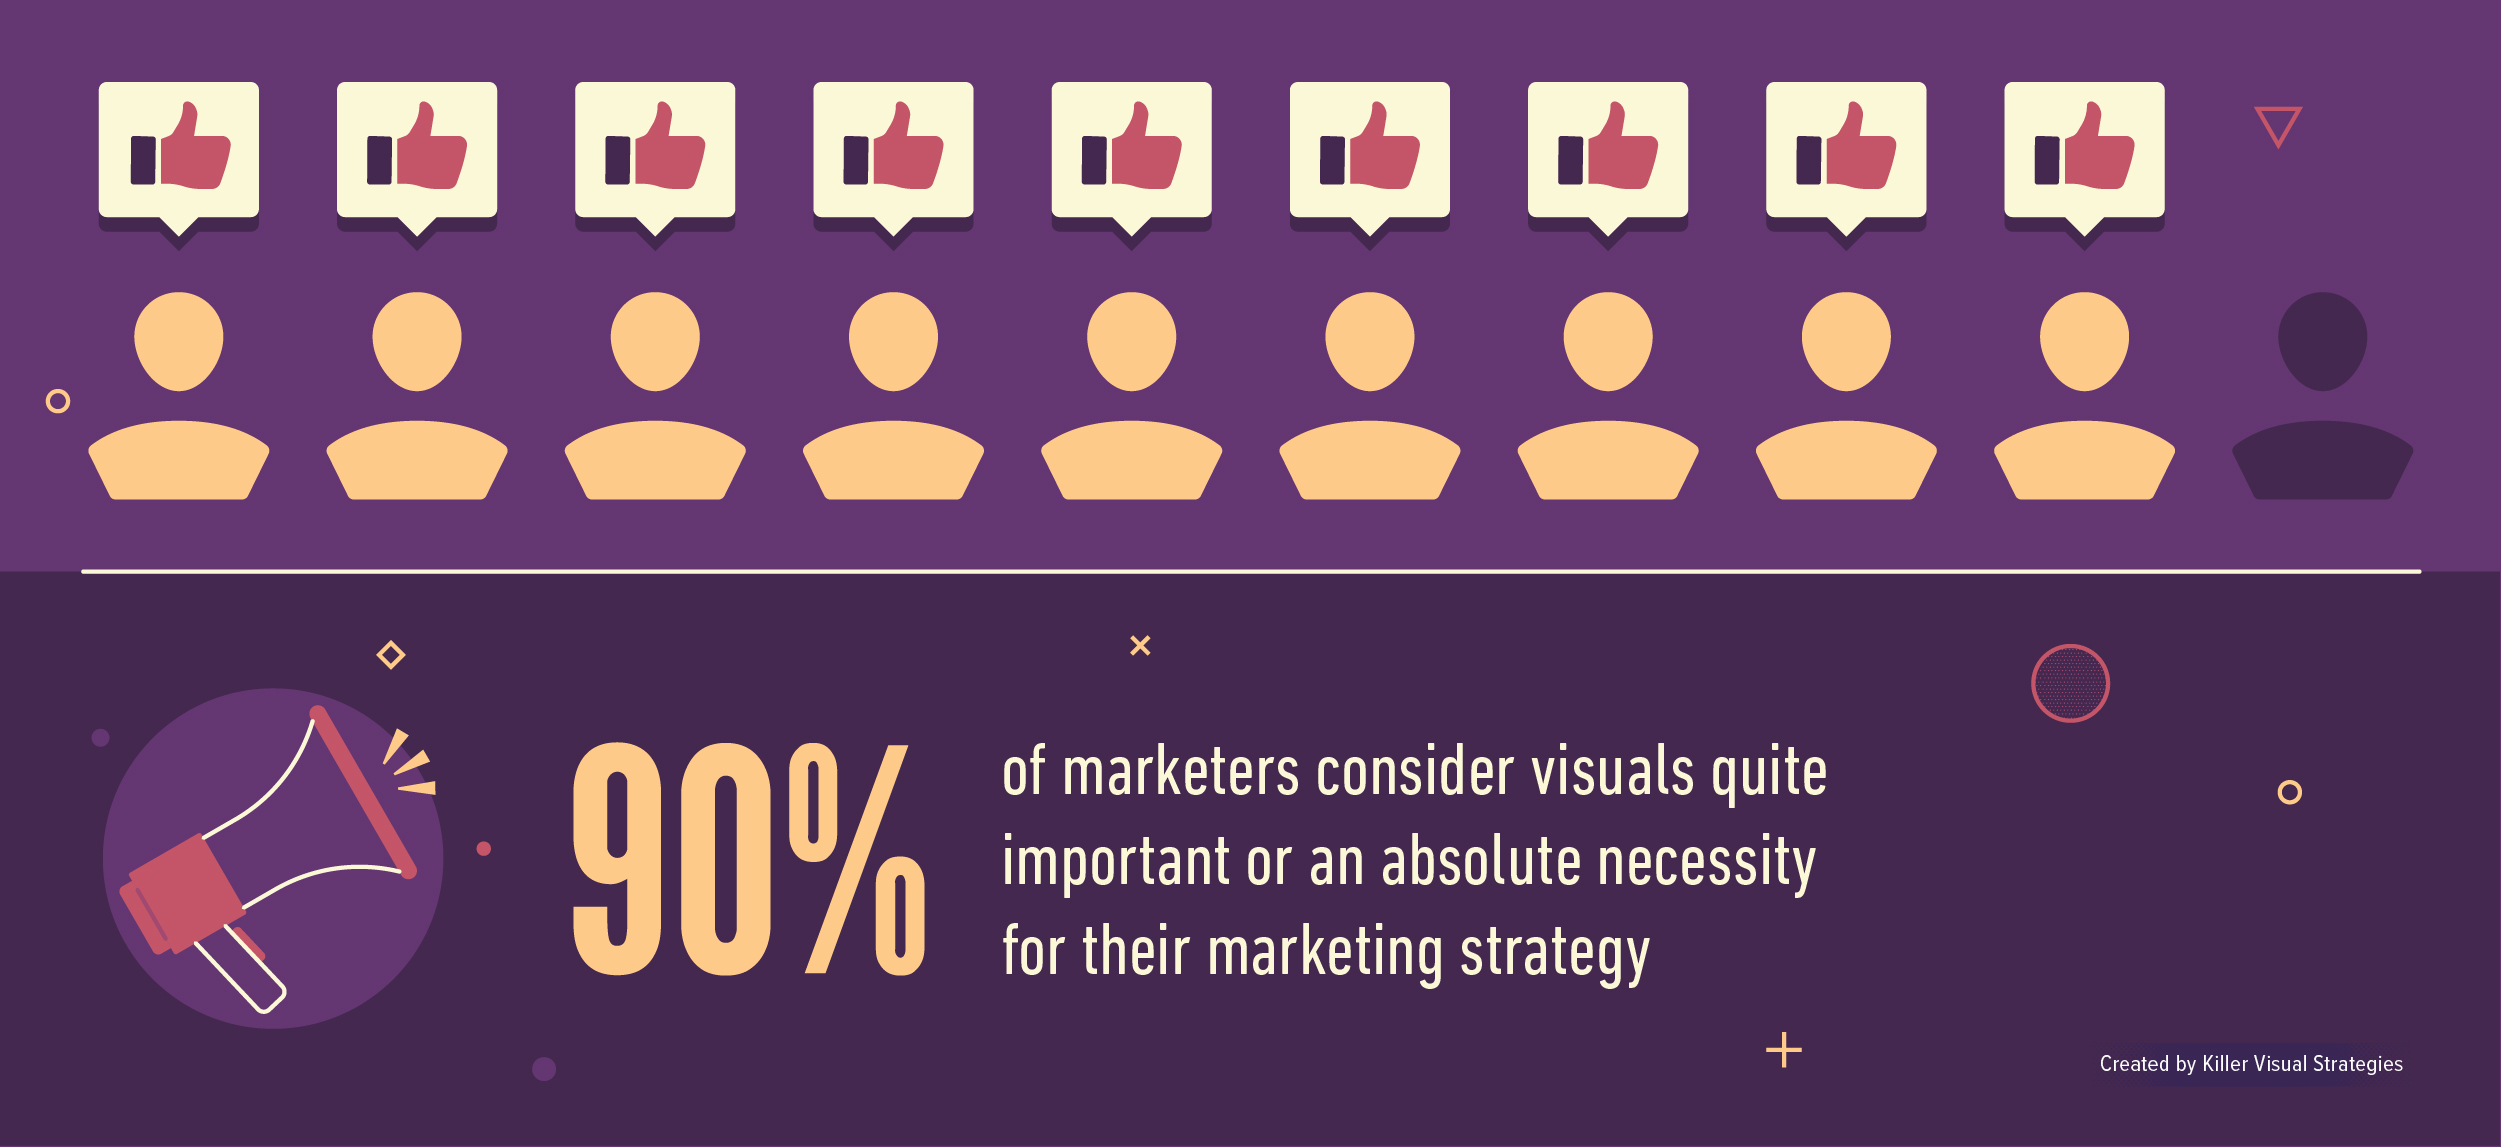 Visual marketing strategy statistic